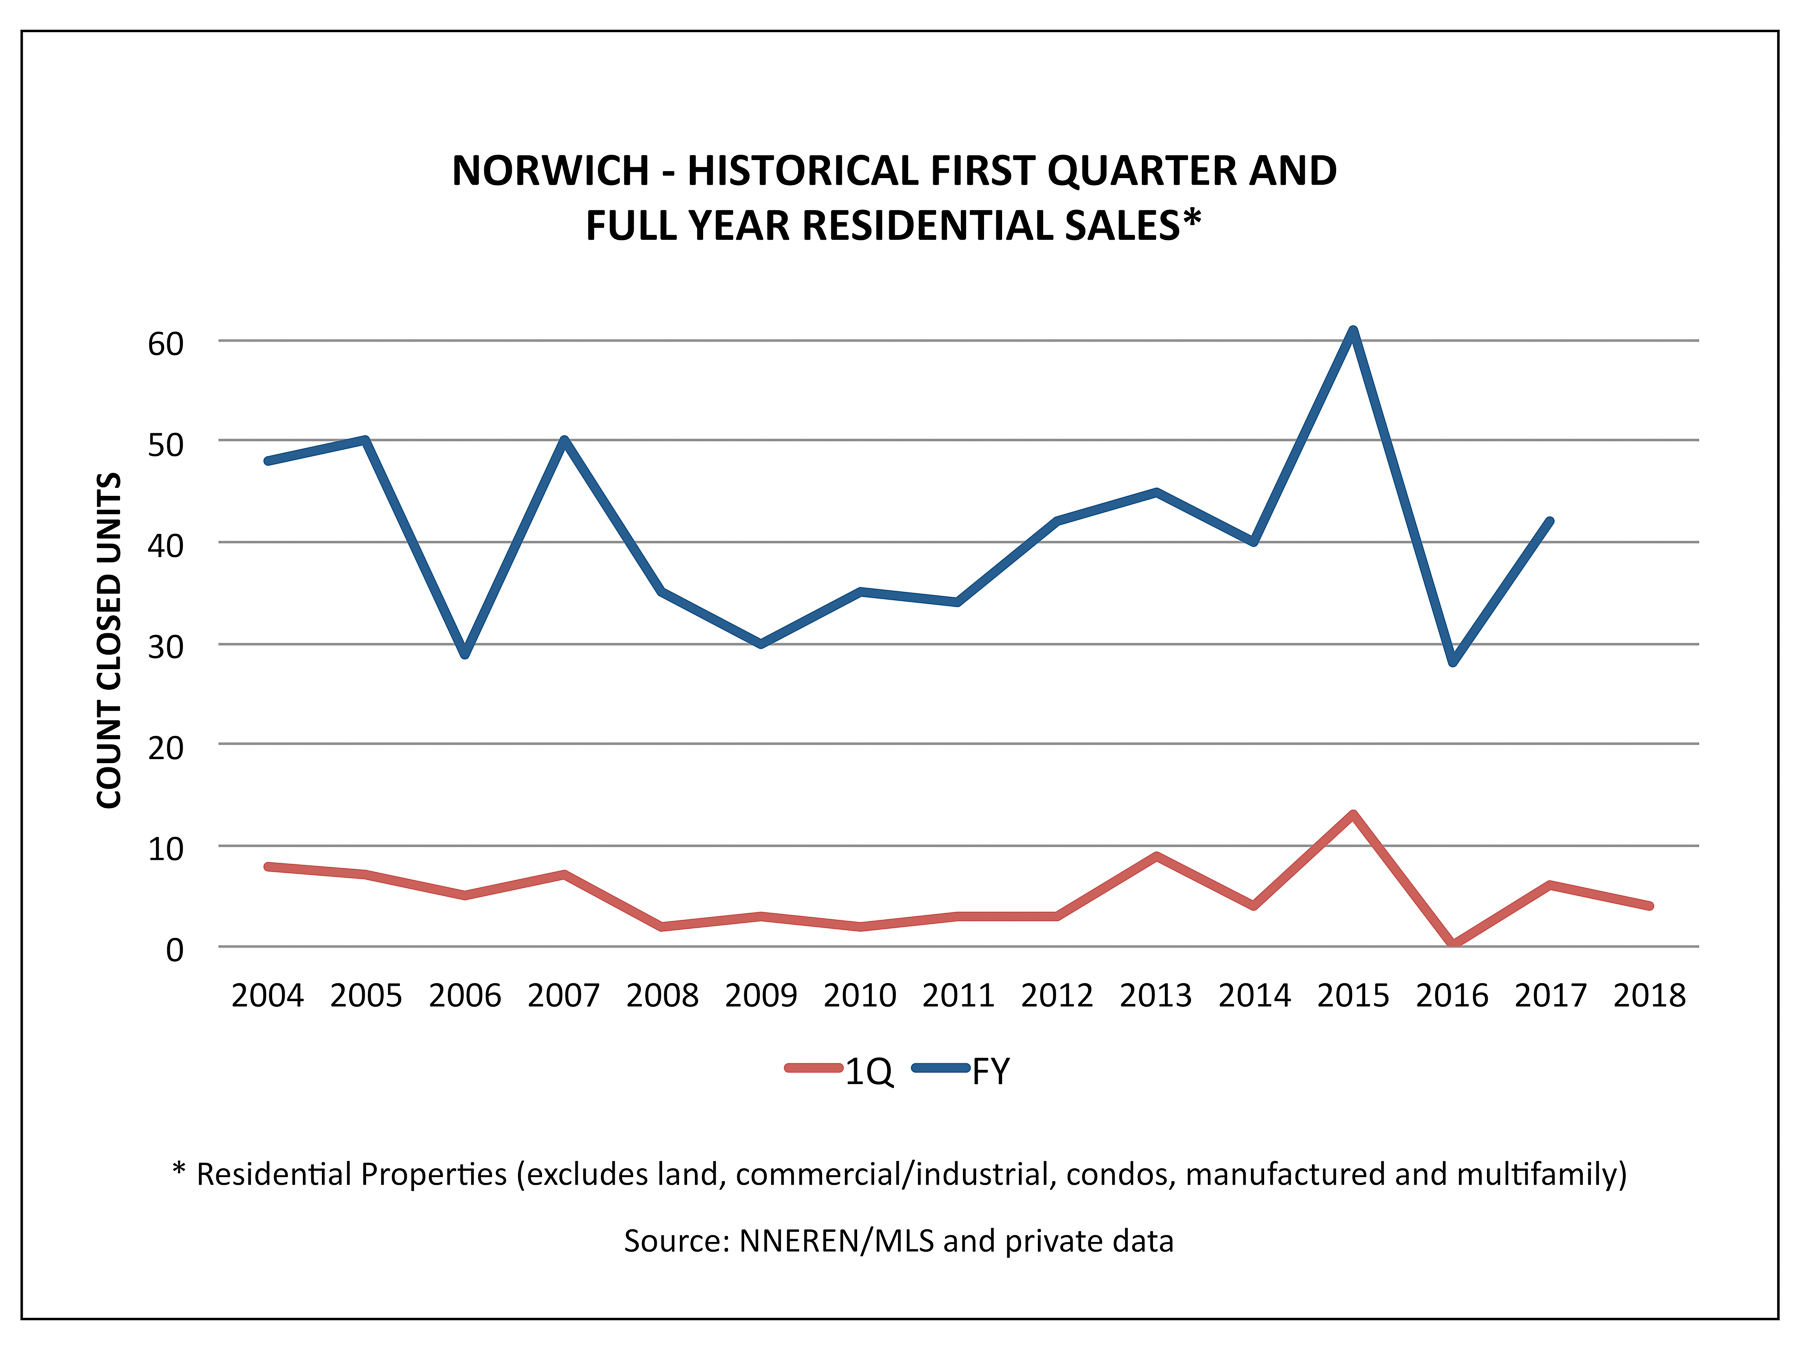 Norwich VT Real Estate - Historical 1Q and FY Home Sales